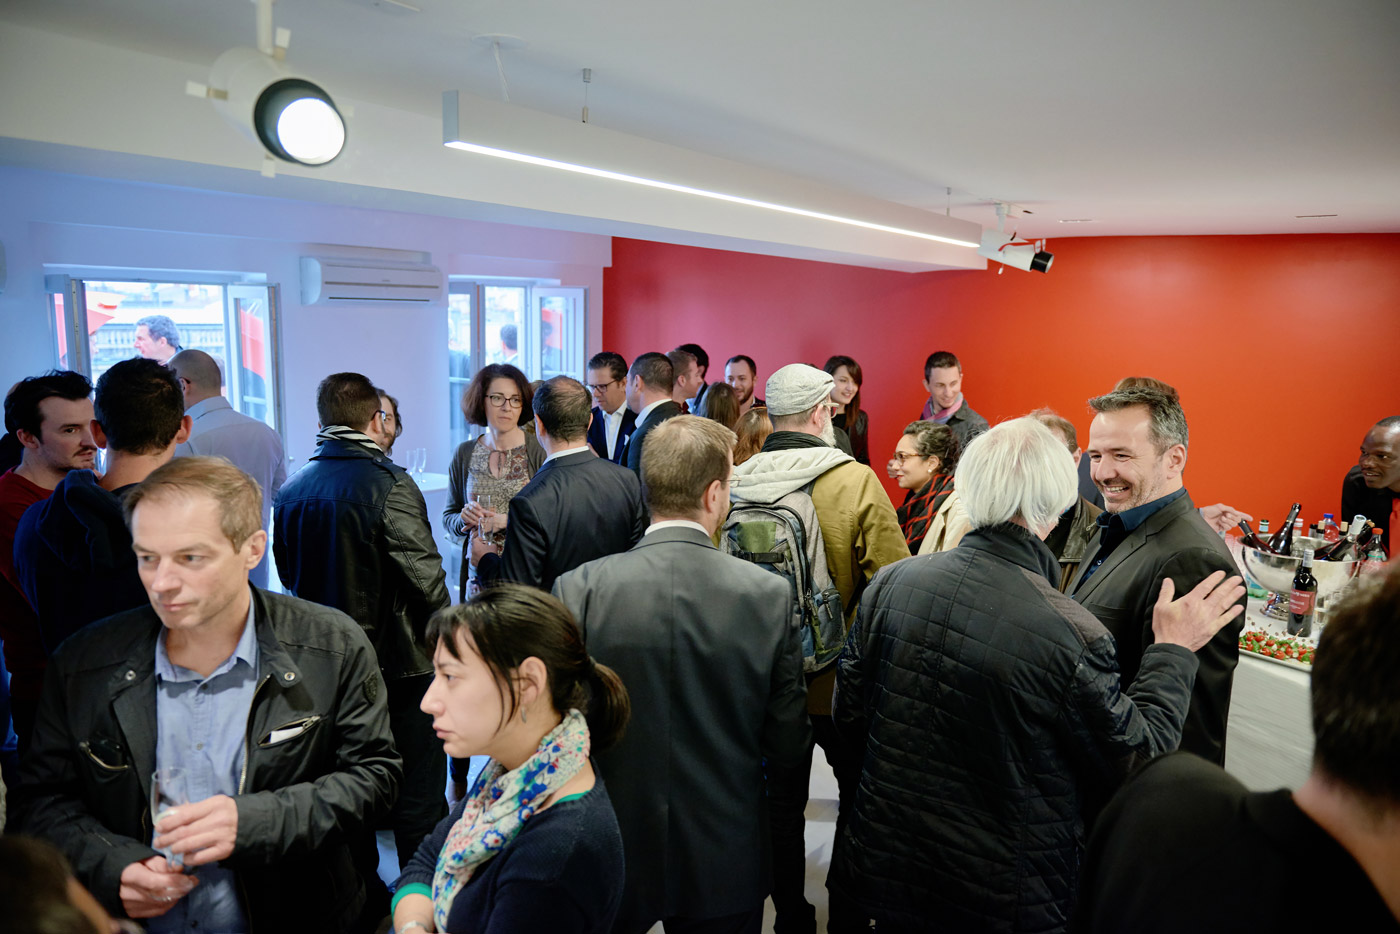 Our new office in Lyon was packed during the inauguration